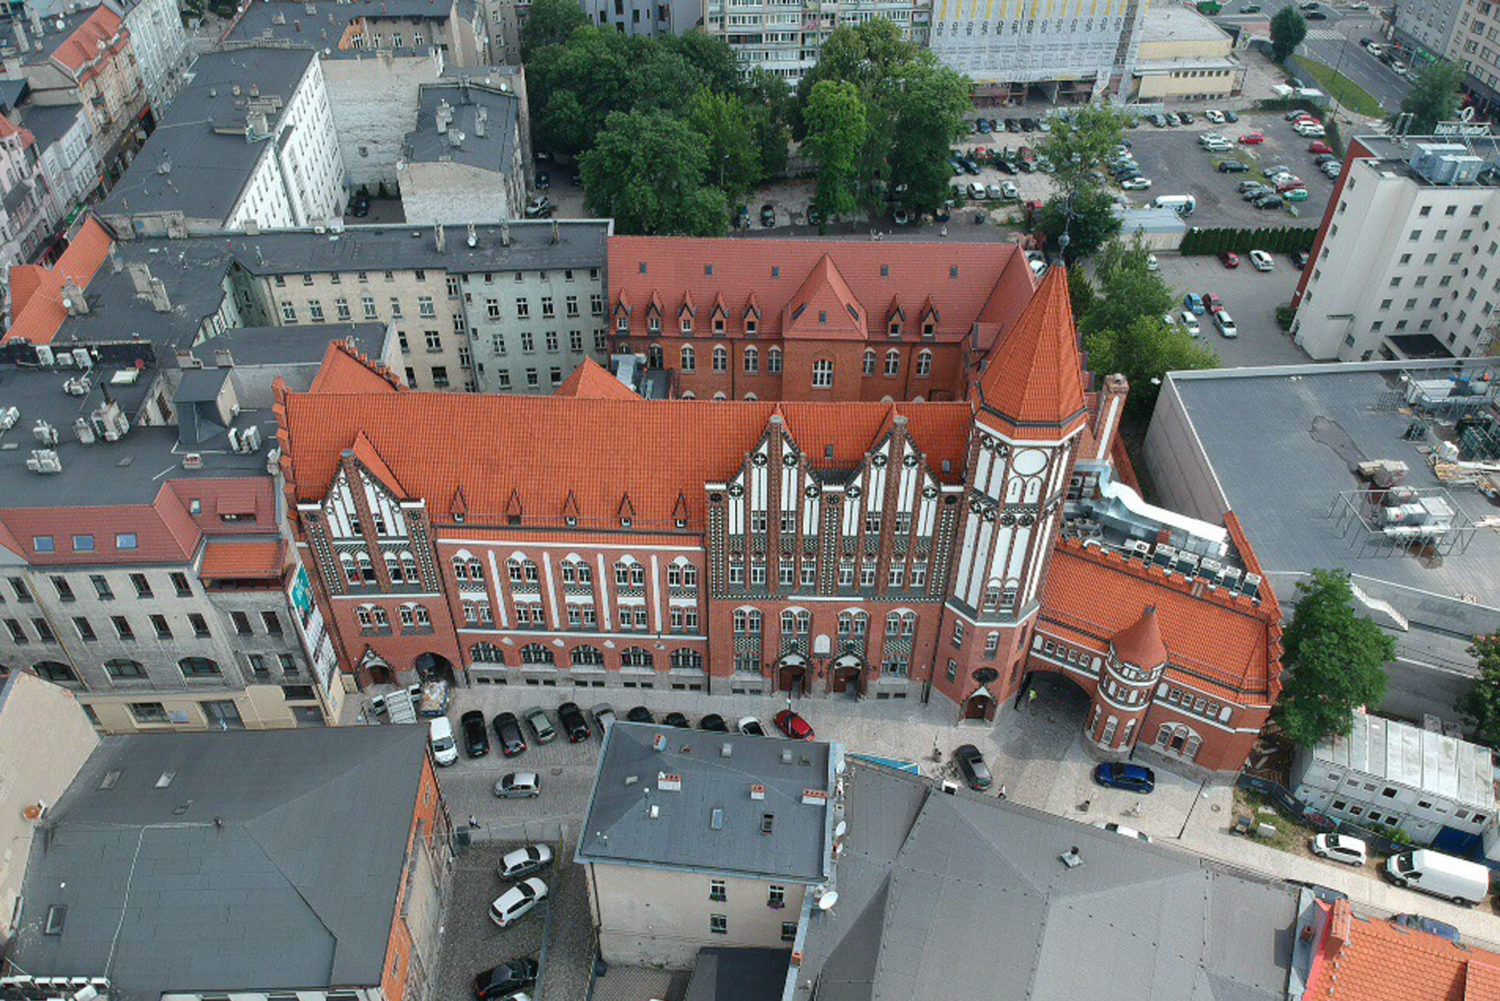 The Software House's headquarter at the Old Post Office in Gliwice